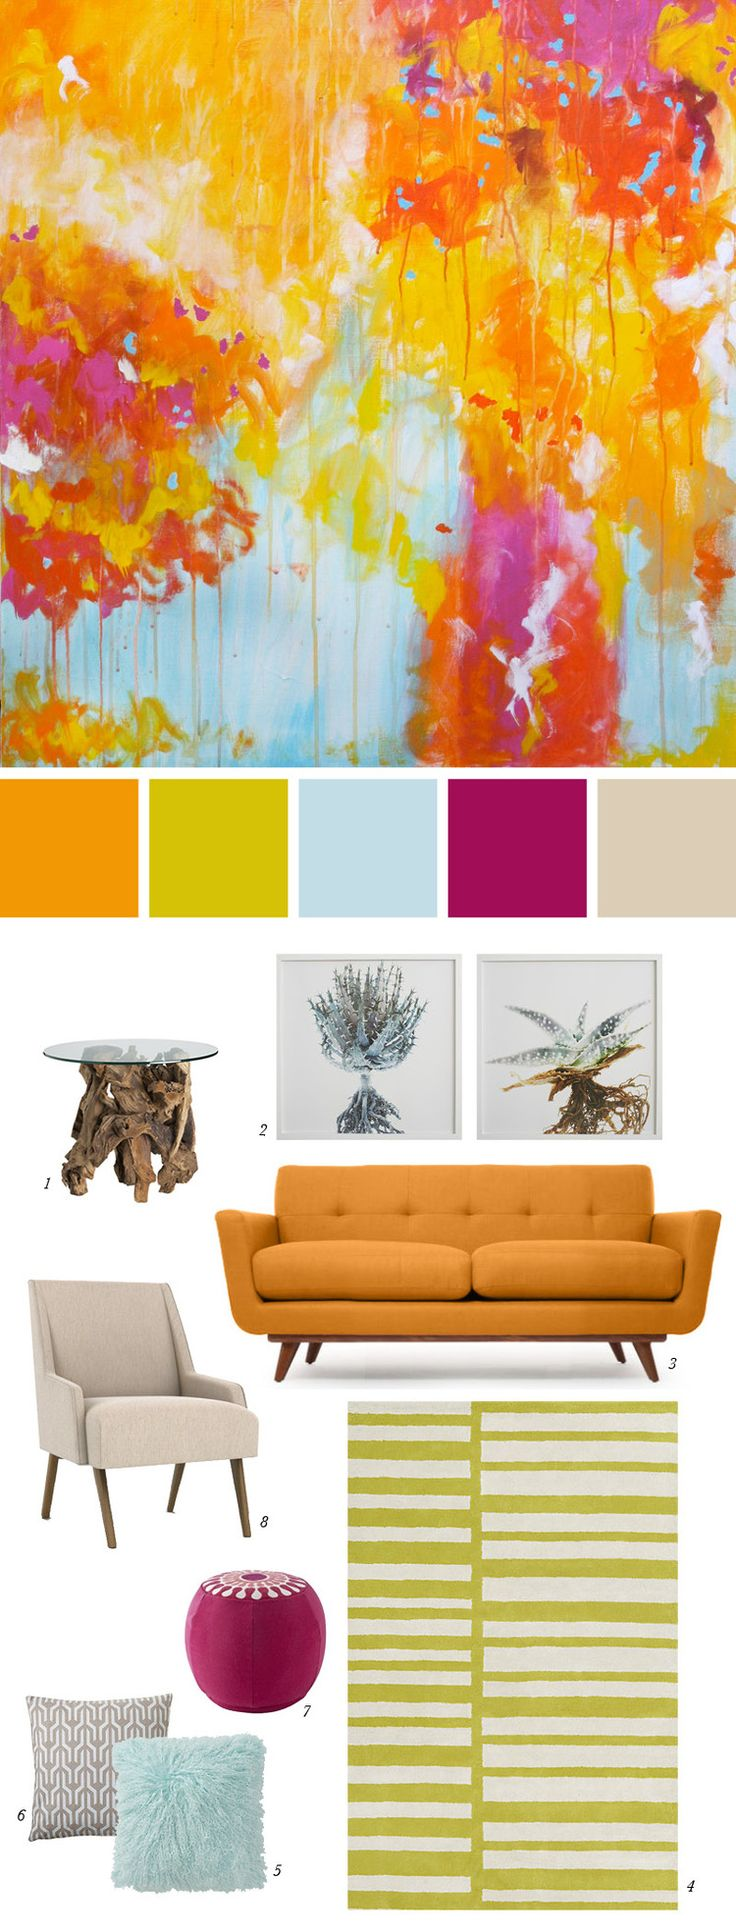 A colorful living room inspired by a vibrant abstract painting